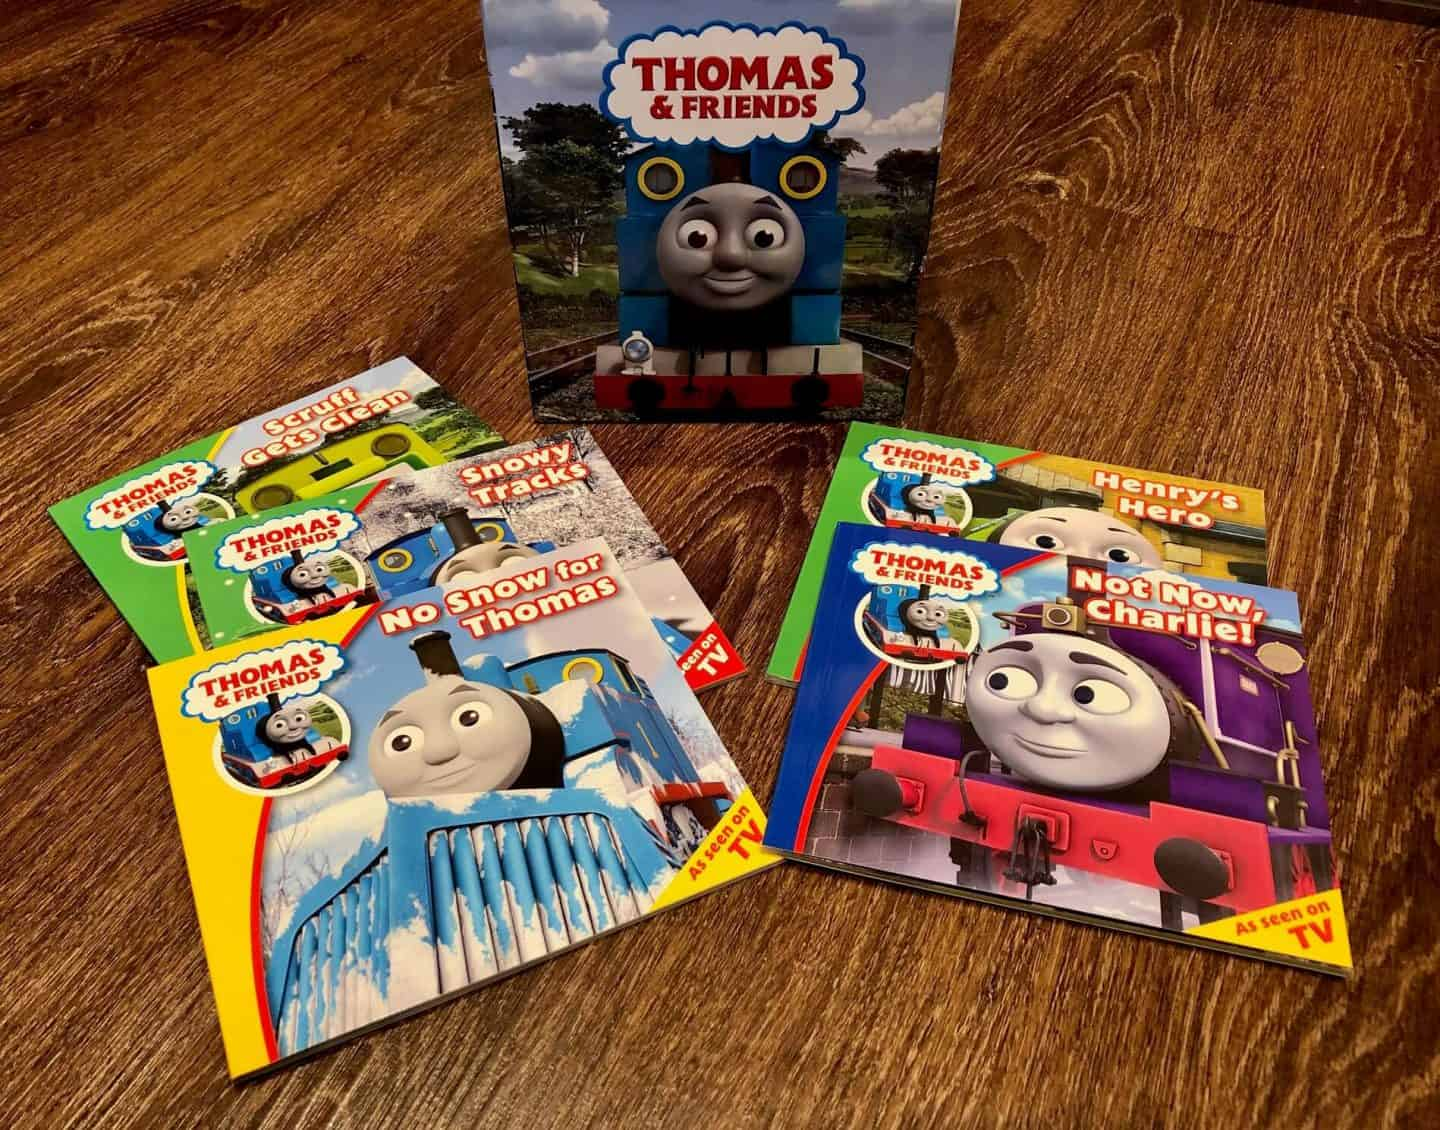 Thomas and Friends: My First Story Time Box Set Review